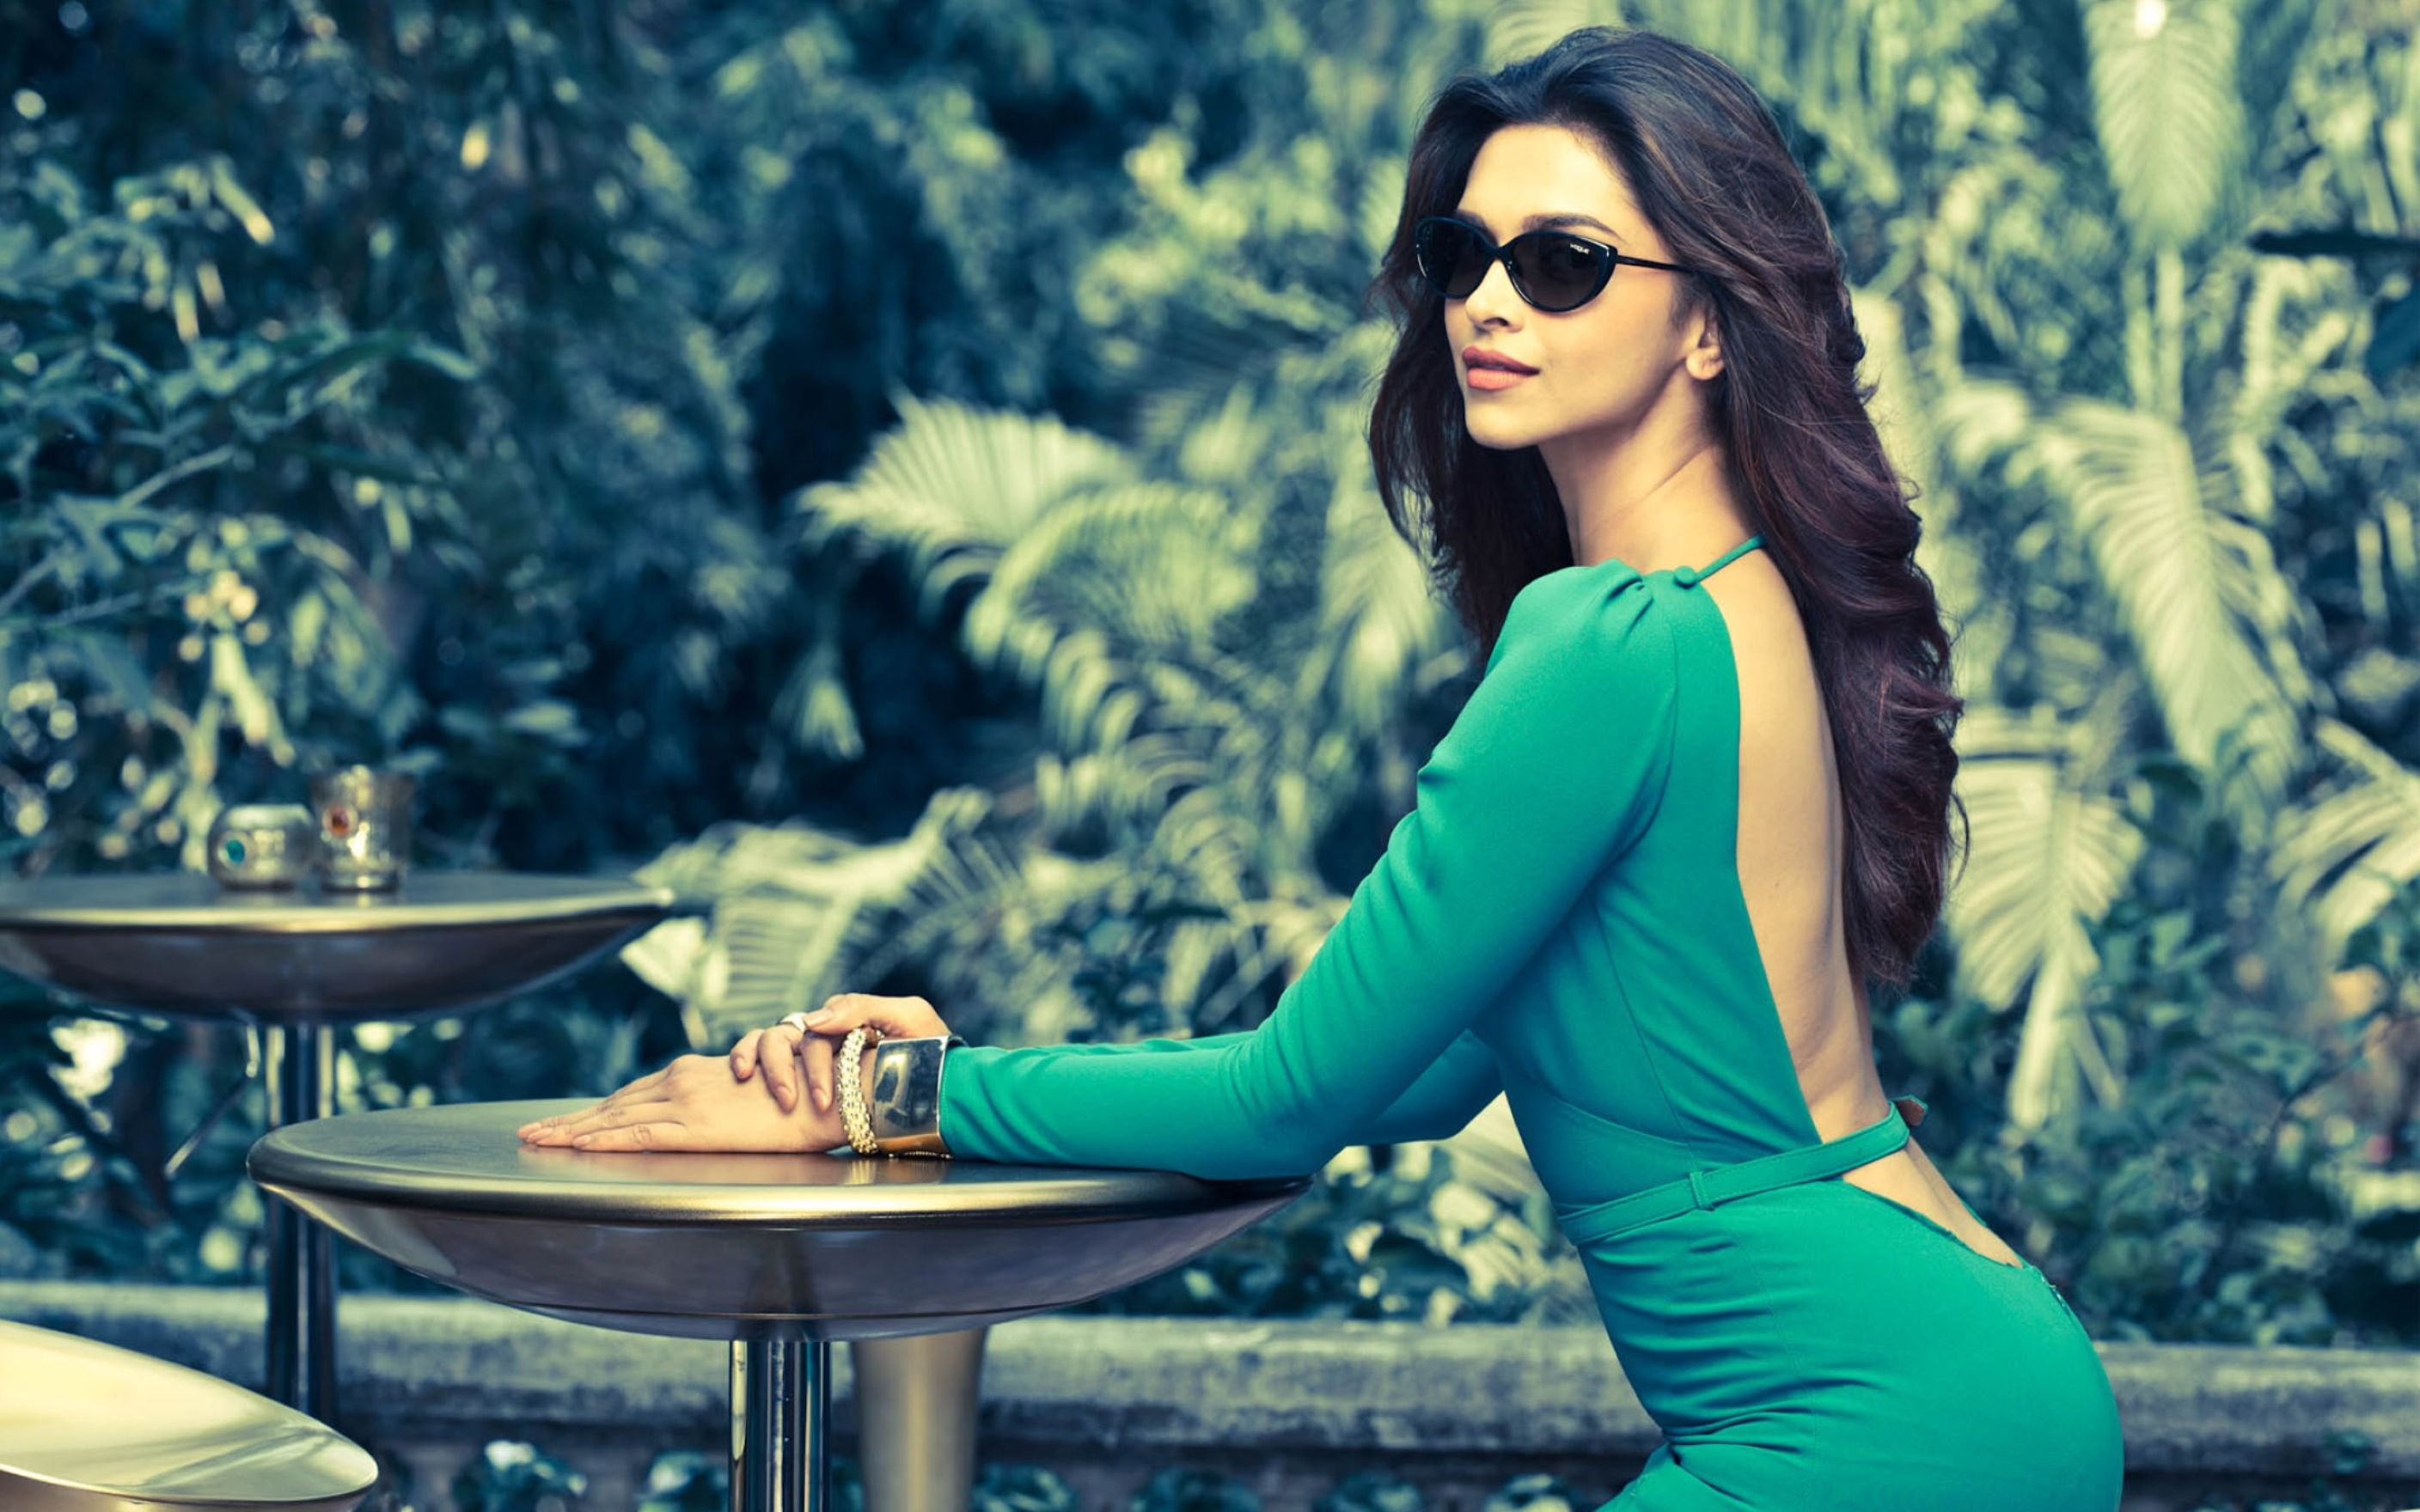 Download free HD Deepika Padukone Vogue Eyewear Wallpaper, image